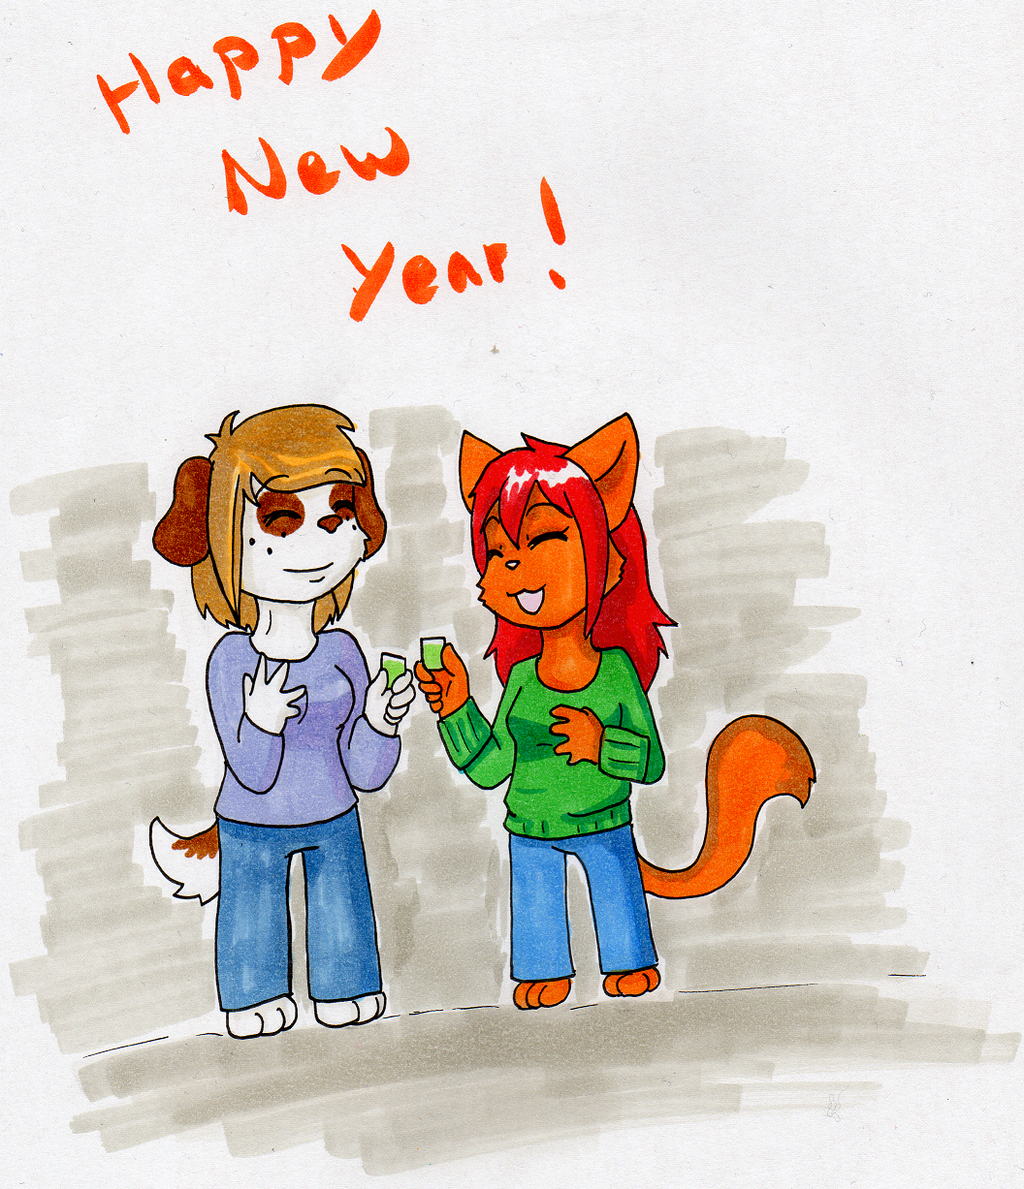 Most recent image: Happy New Years '15